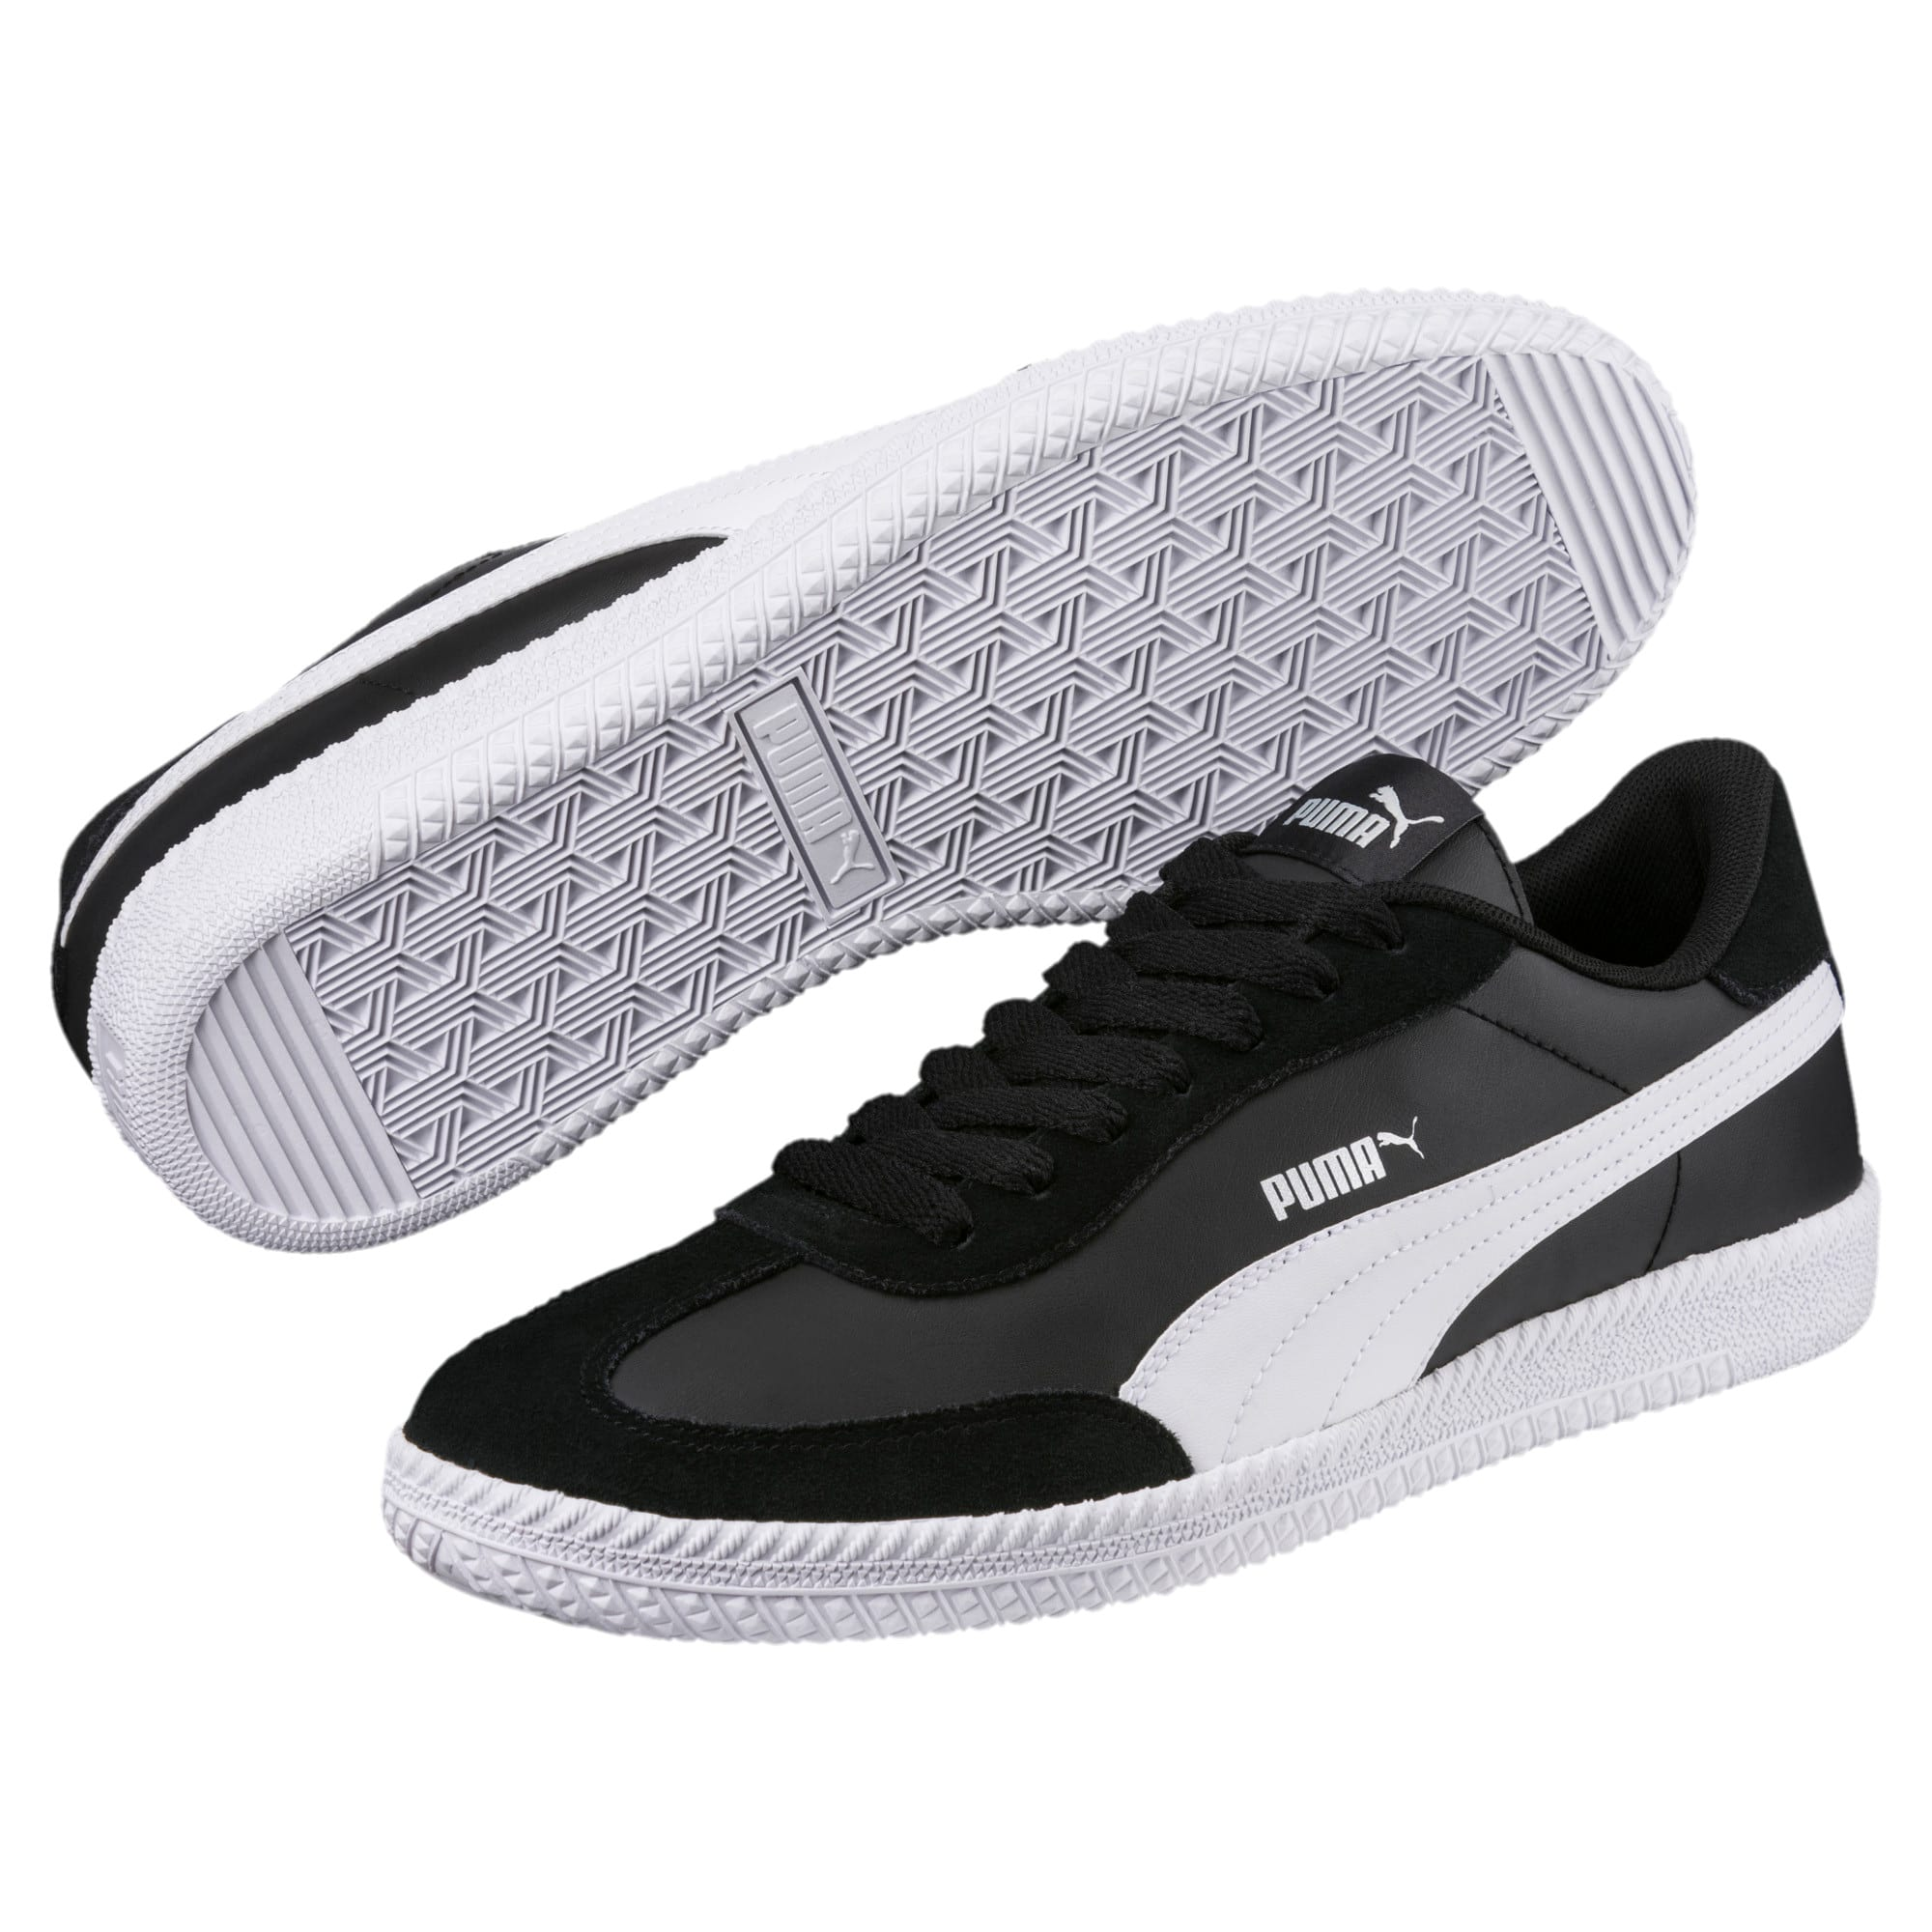 Thumbnail 2 of Astro Cup Sneakers, Puma Black-Puma White, medium